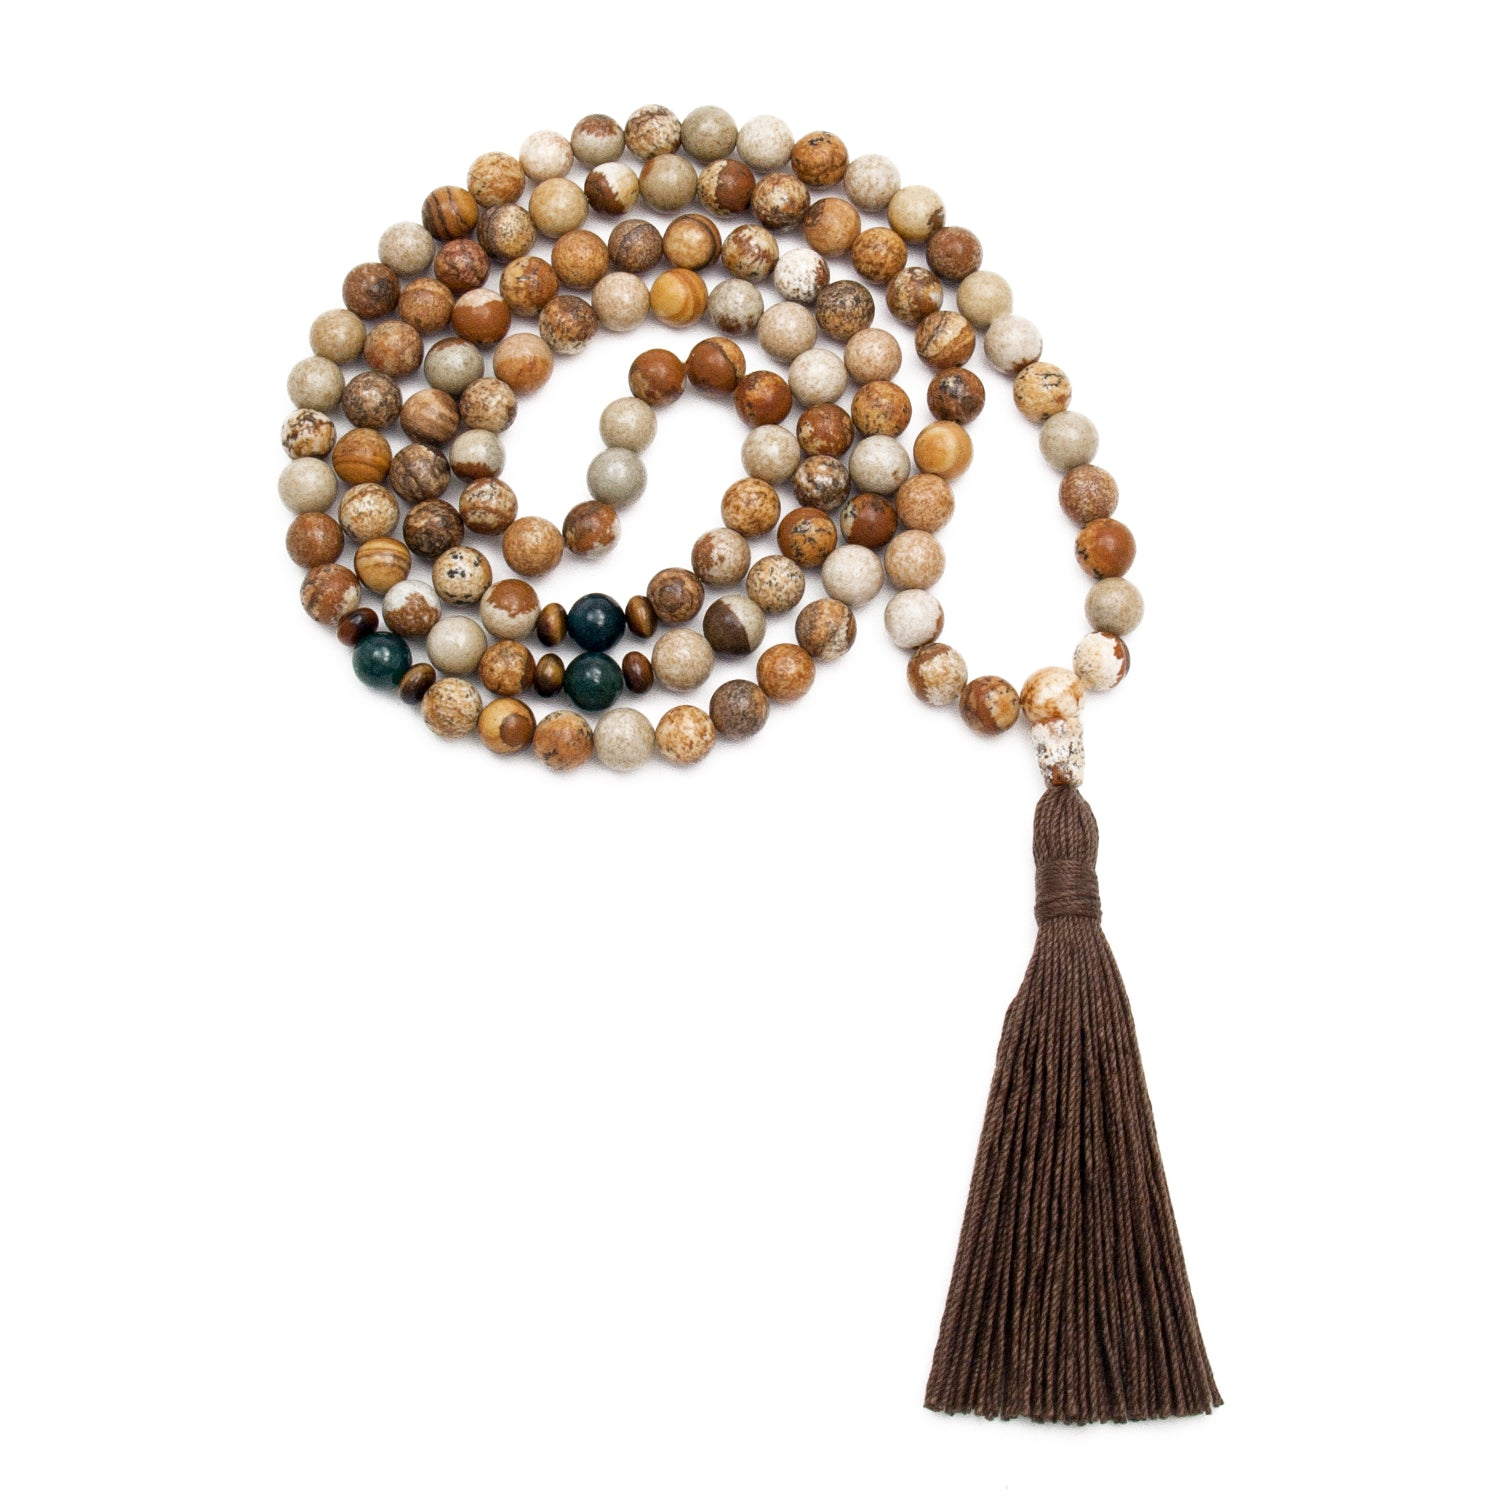 Grounding Mala - 108 Jasper Gemstones